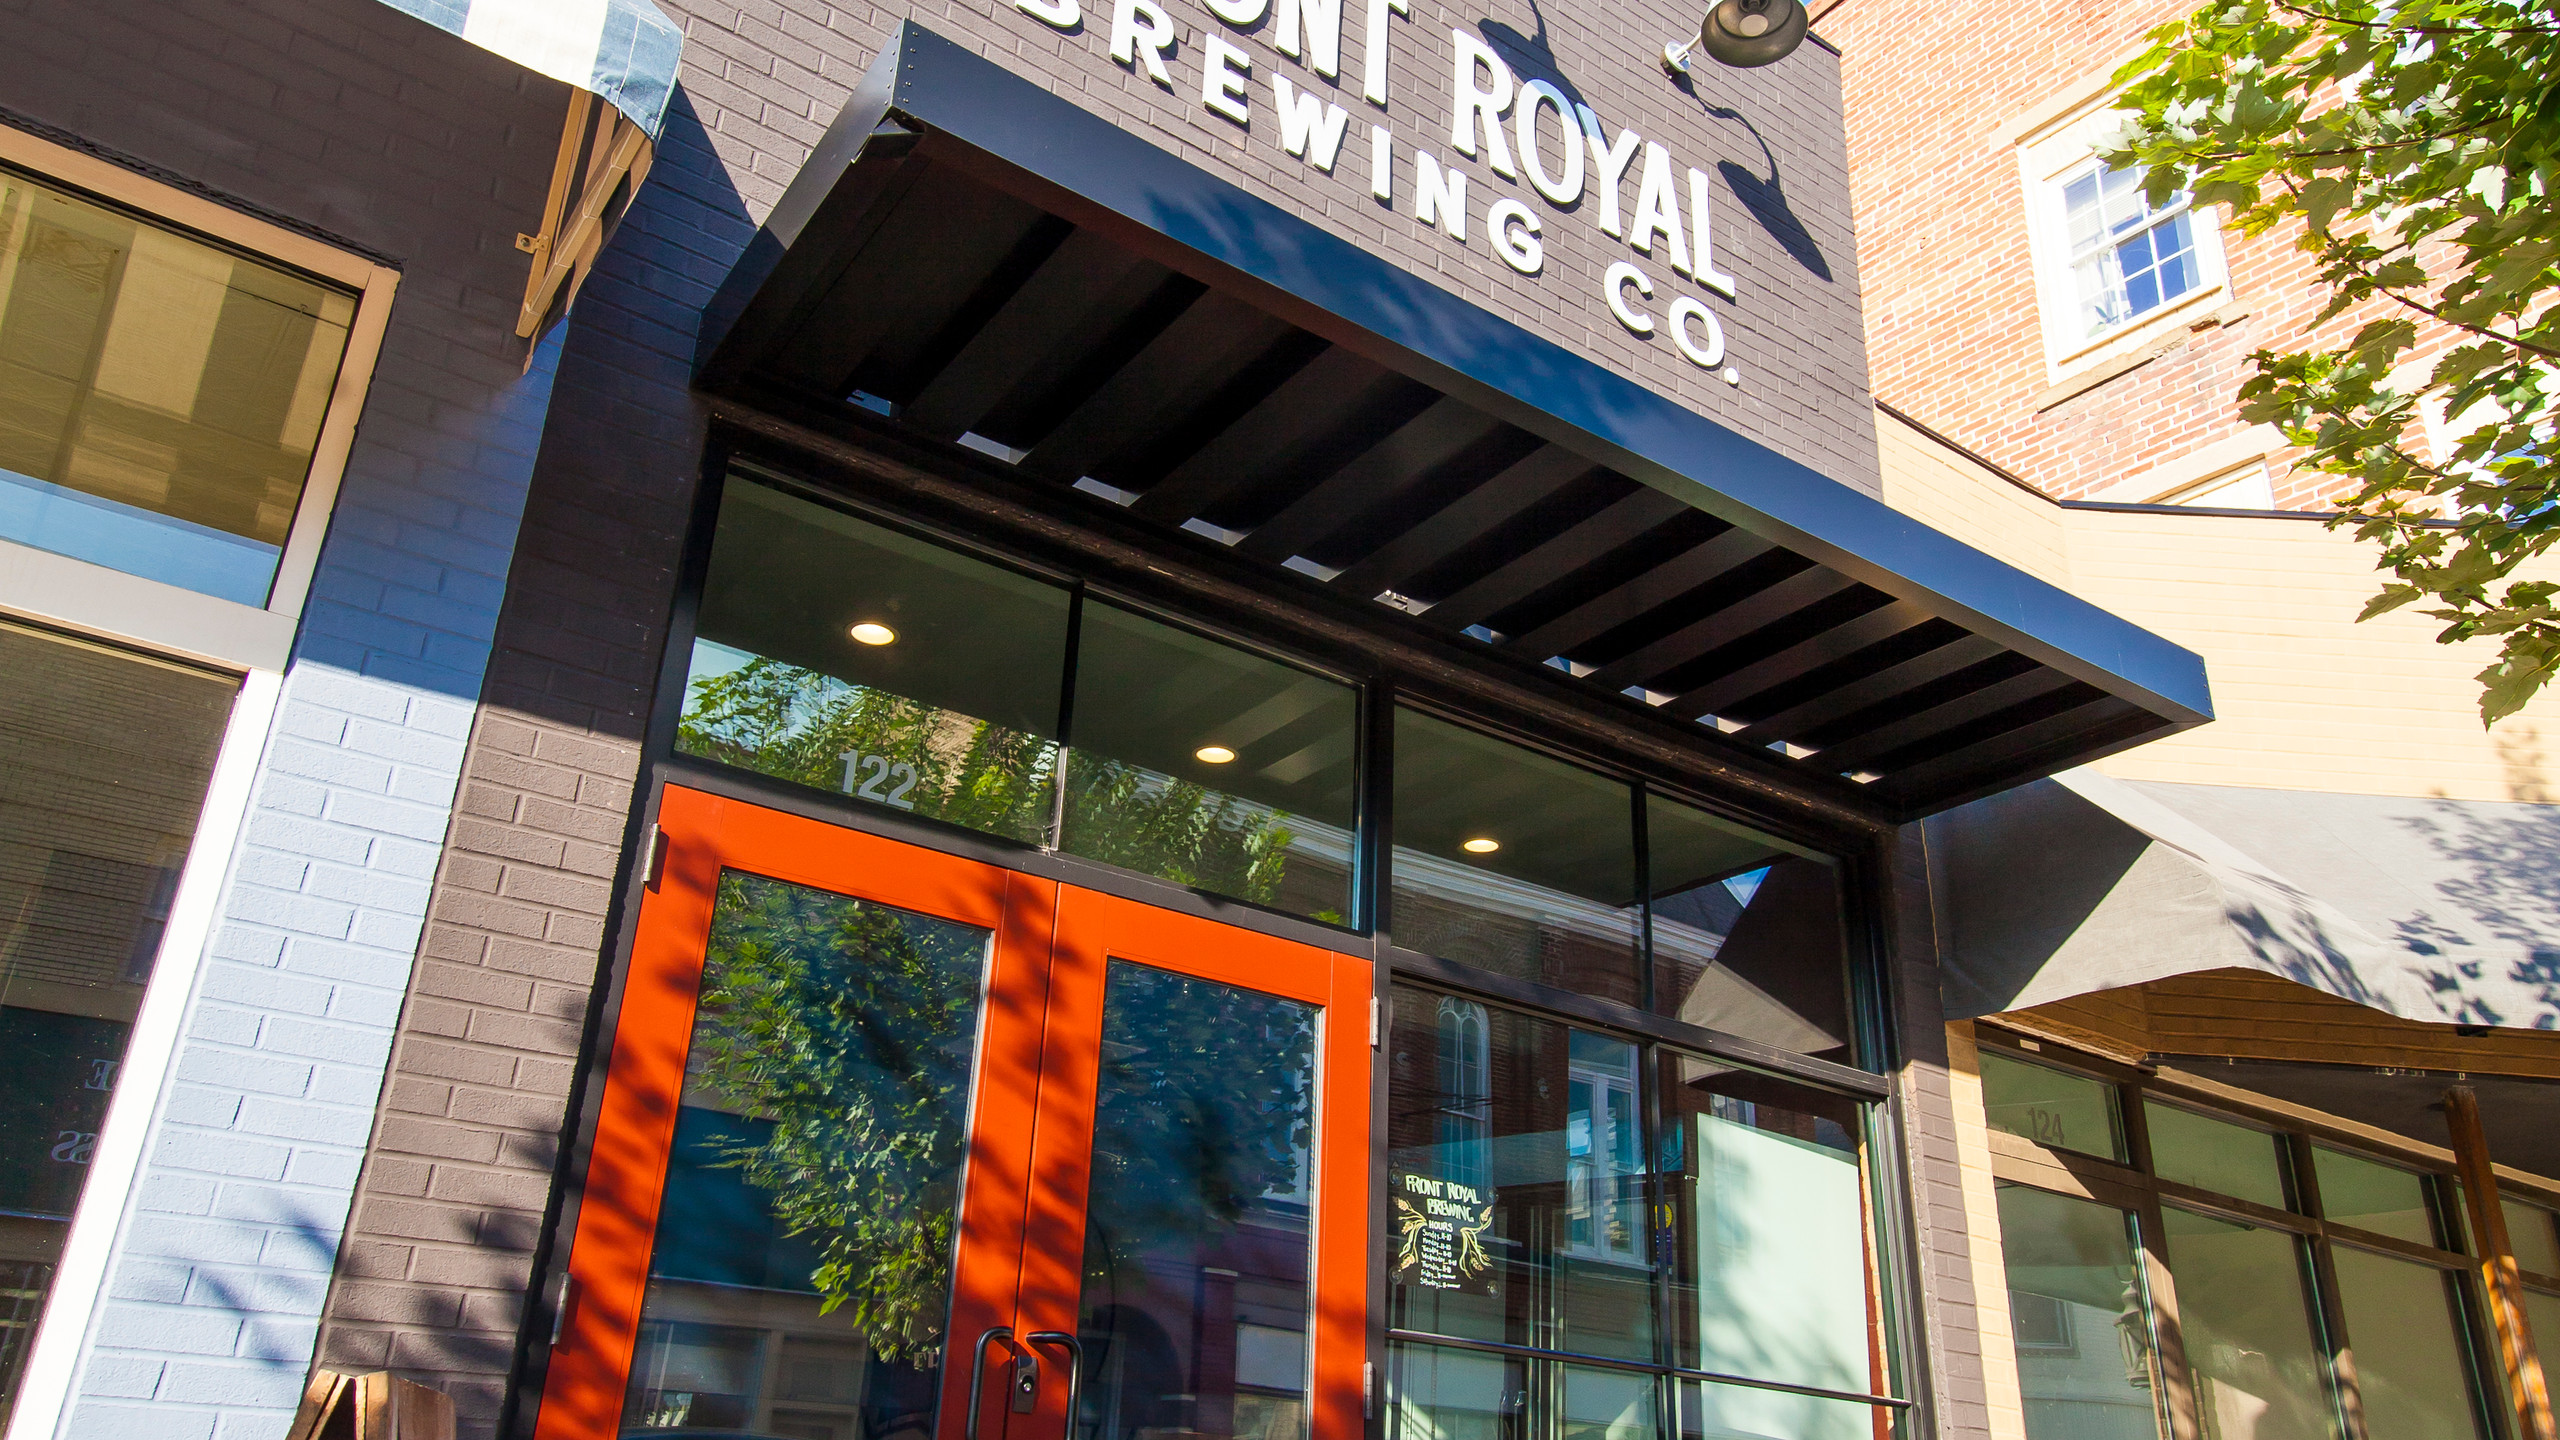 Street view of Front Royal Brewing C